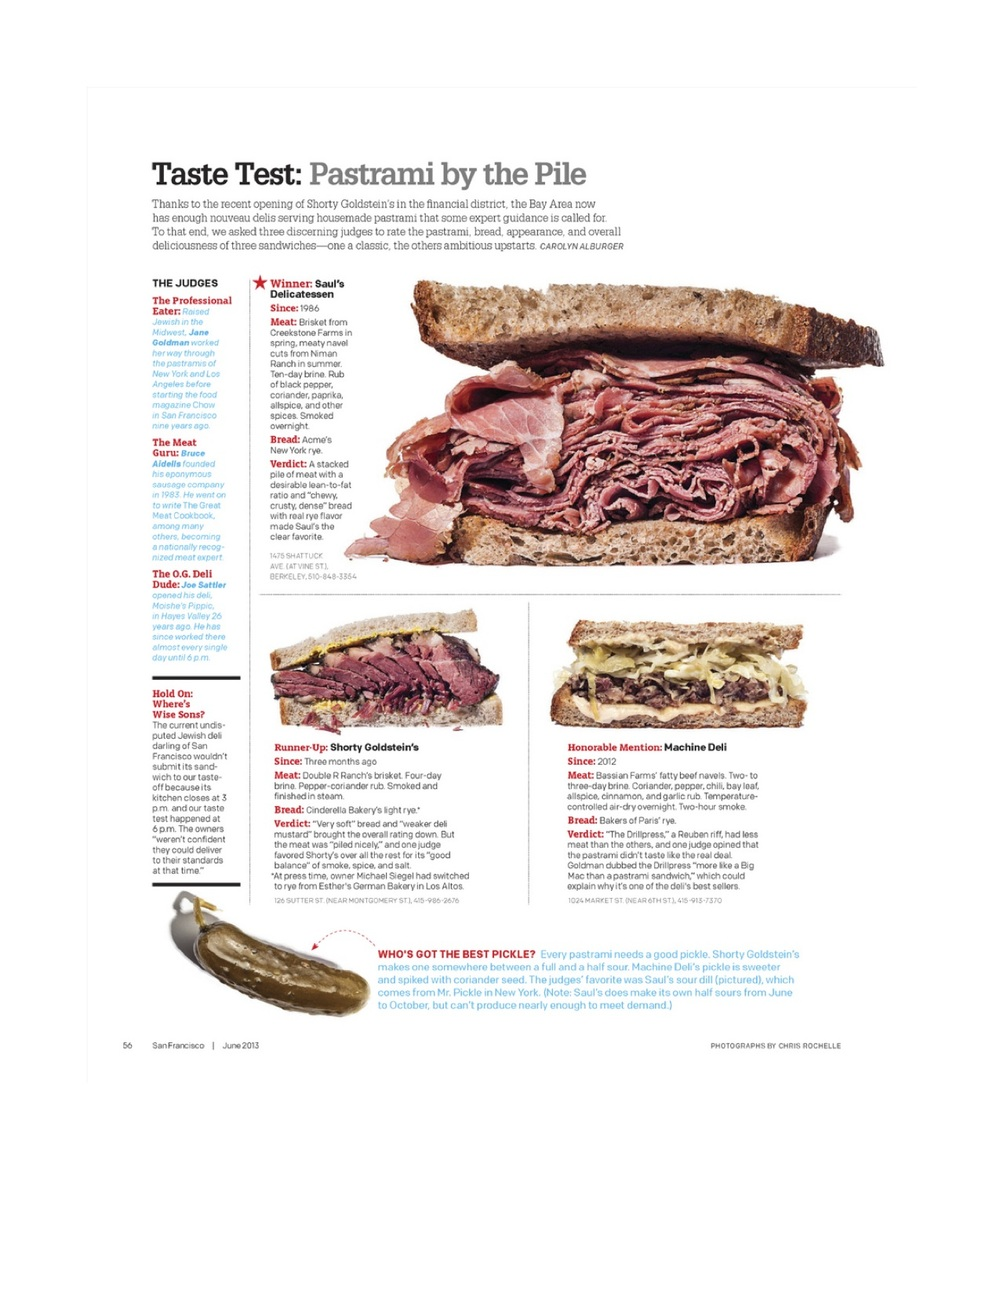 SF Magazine Pastrami Taste Test June 2013.jpg